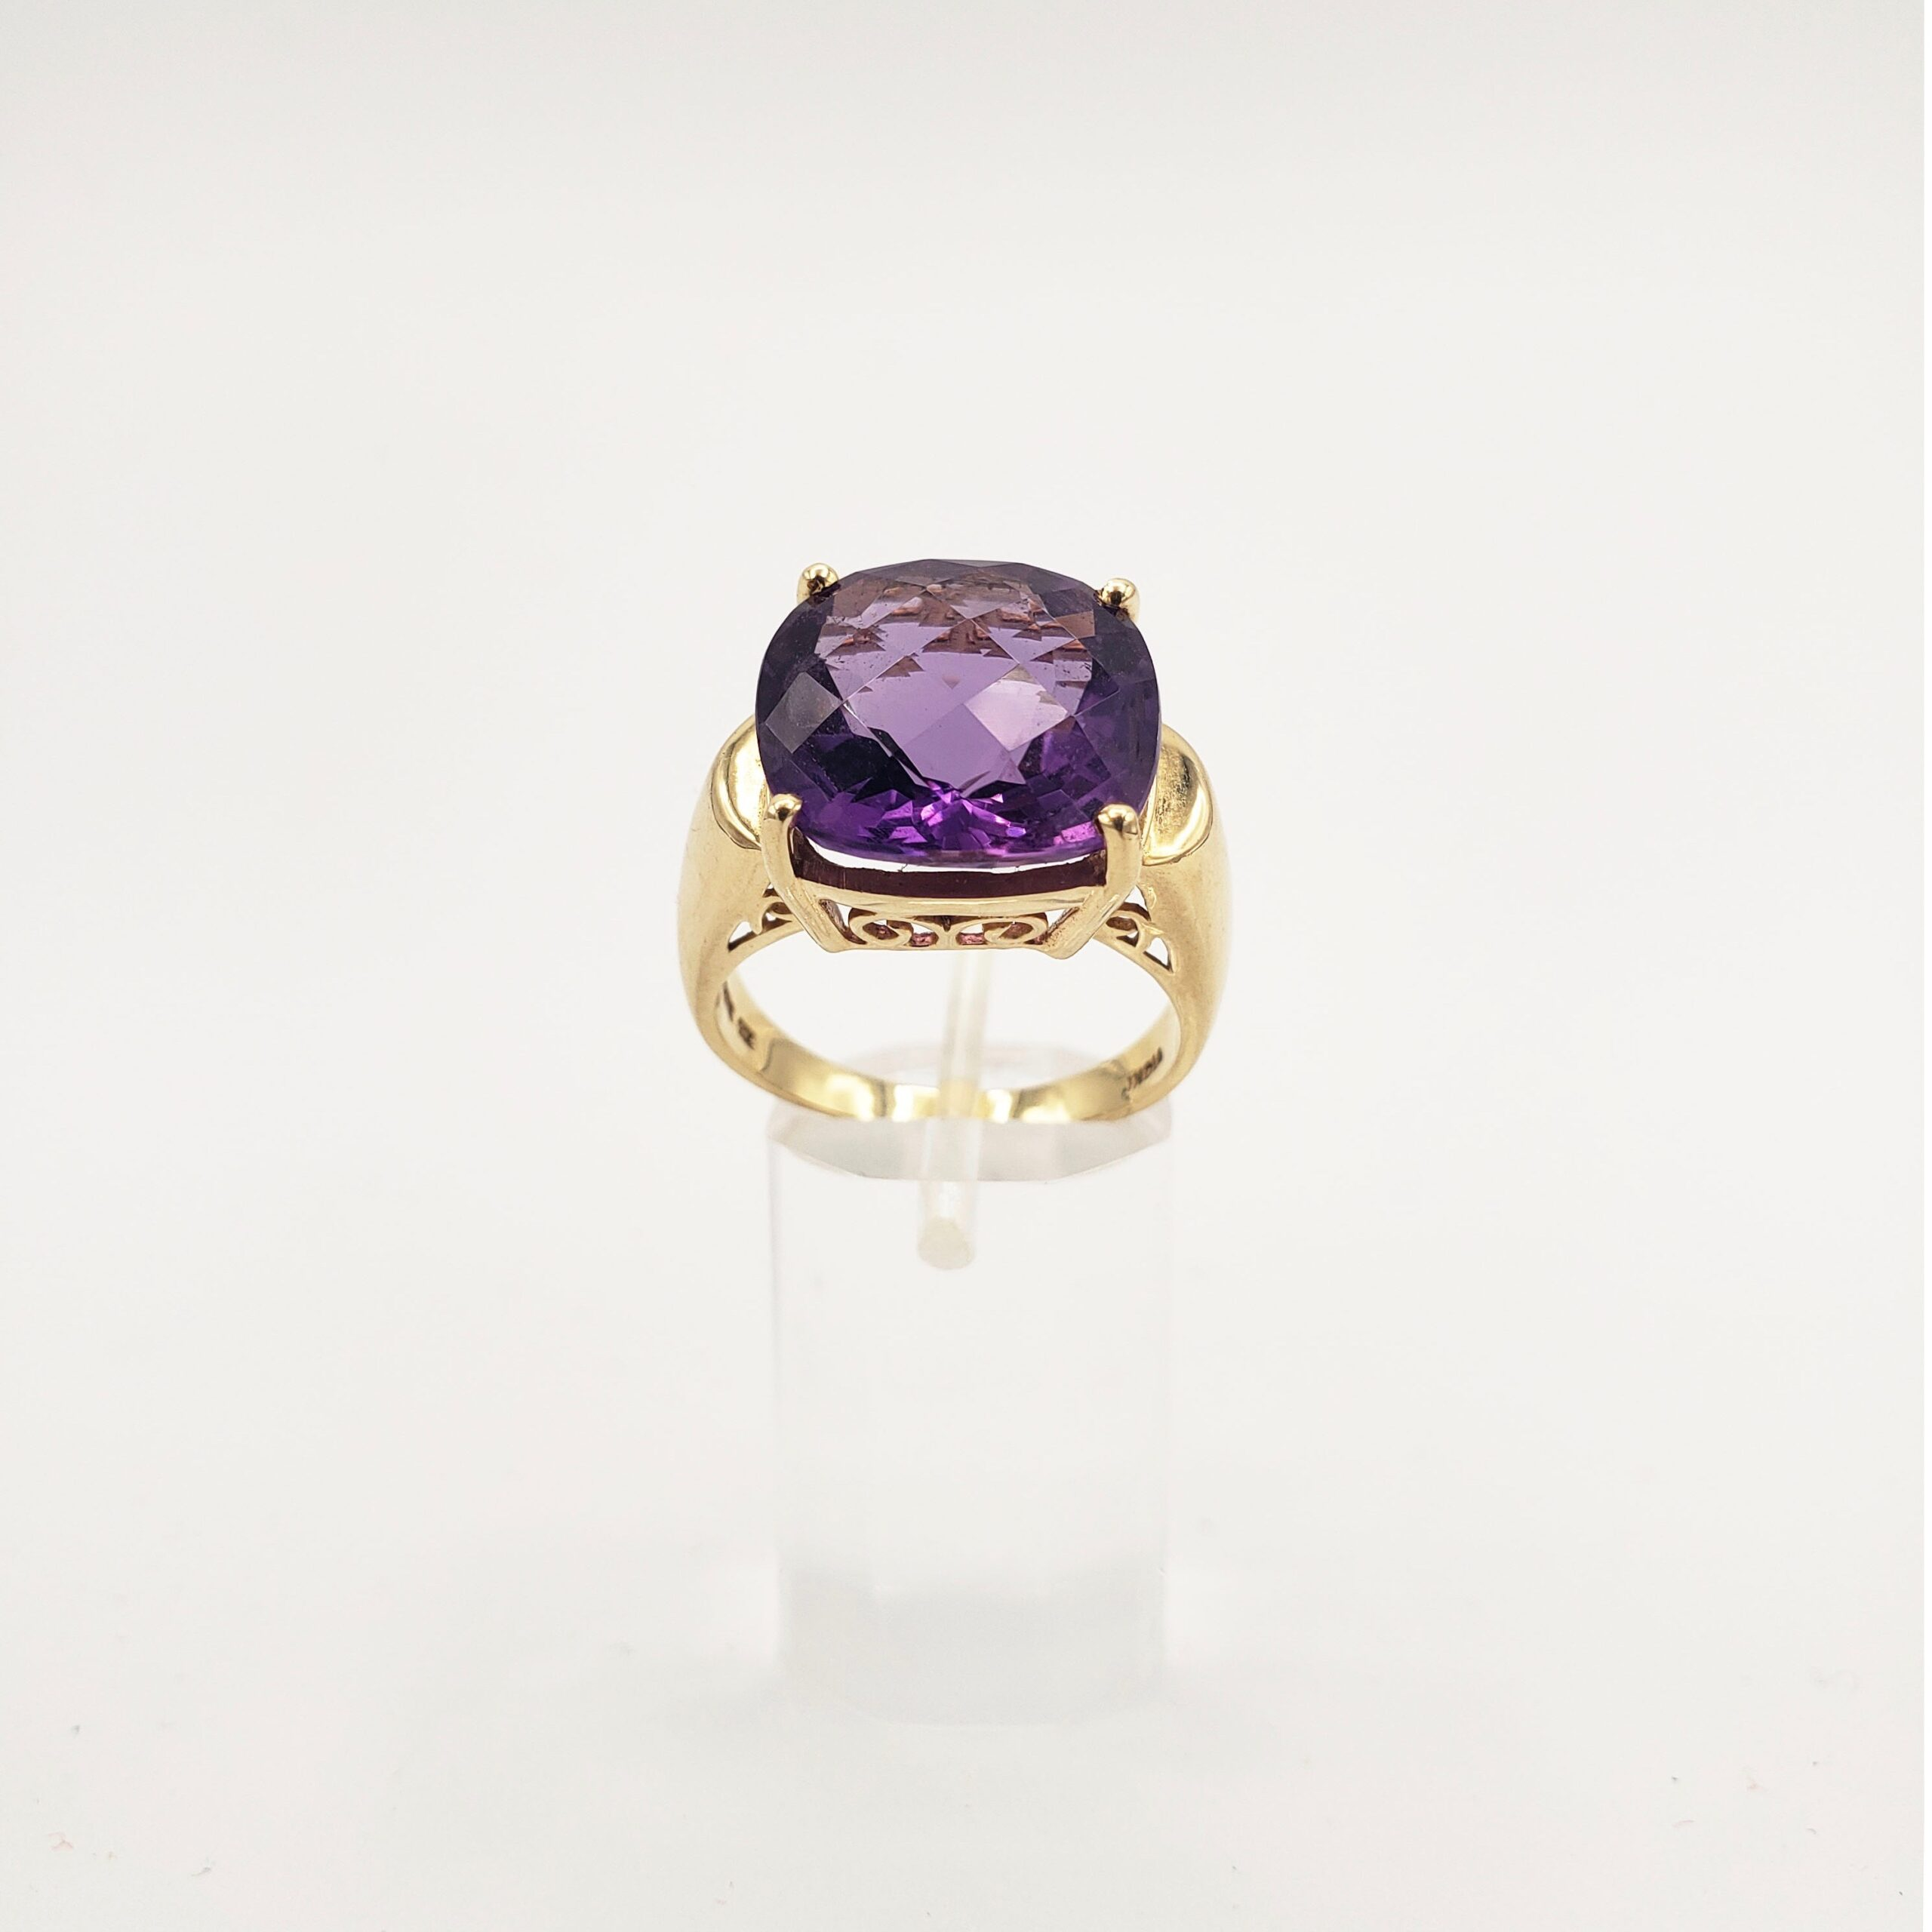 14kt Gold & Faceted Amethyst Ring